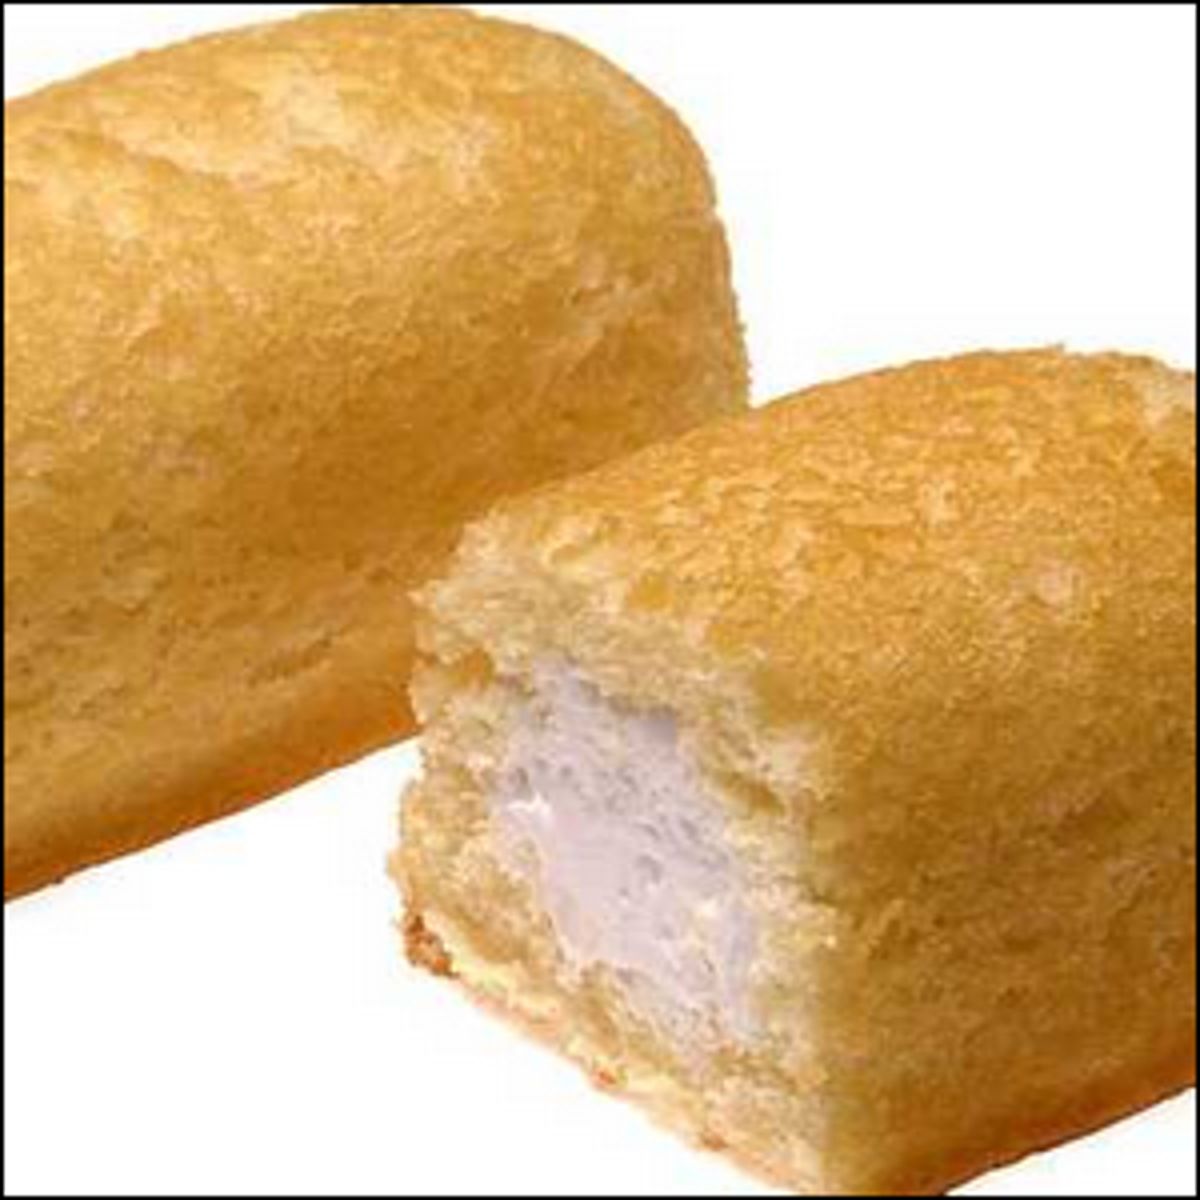 A promotional photo of a Twinkie treat cut in half.